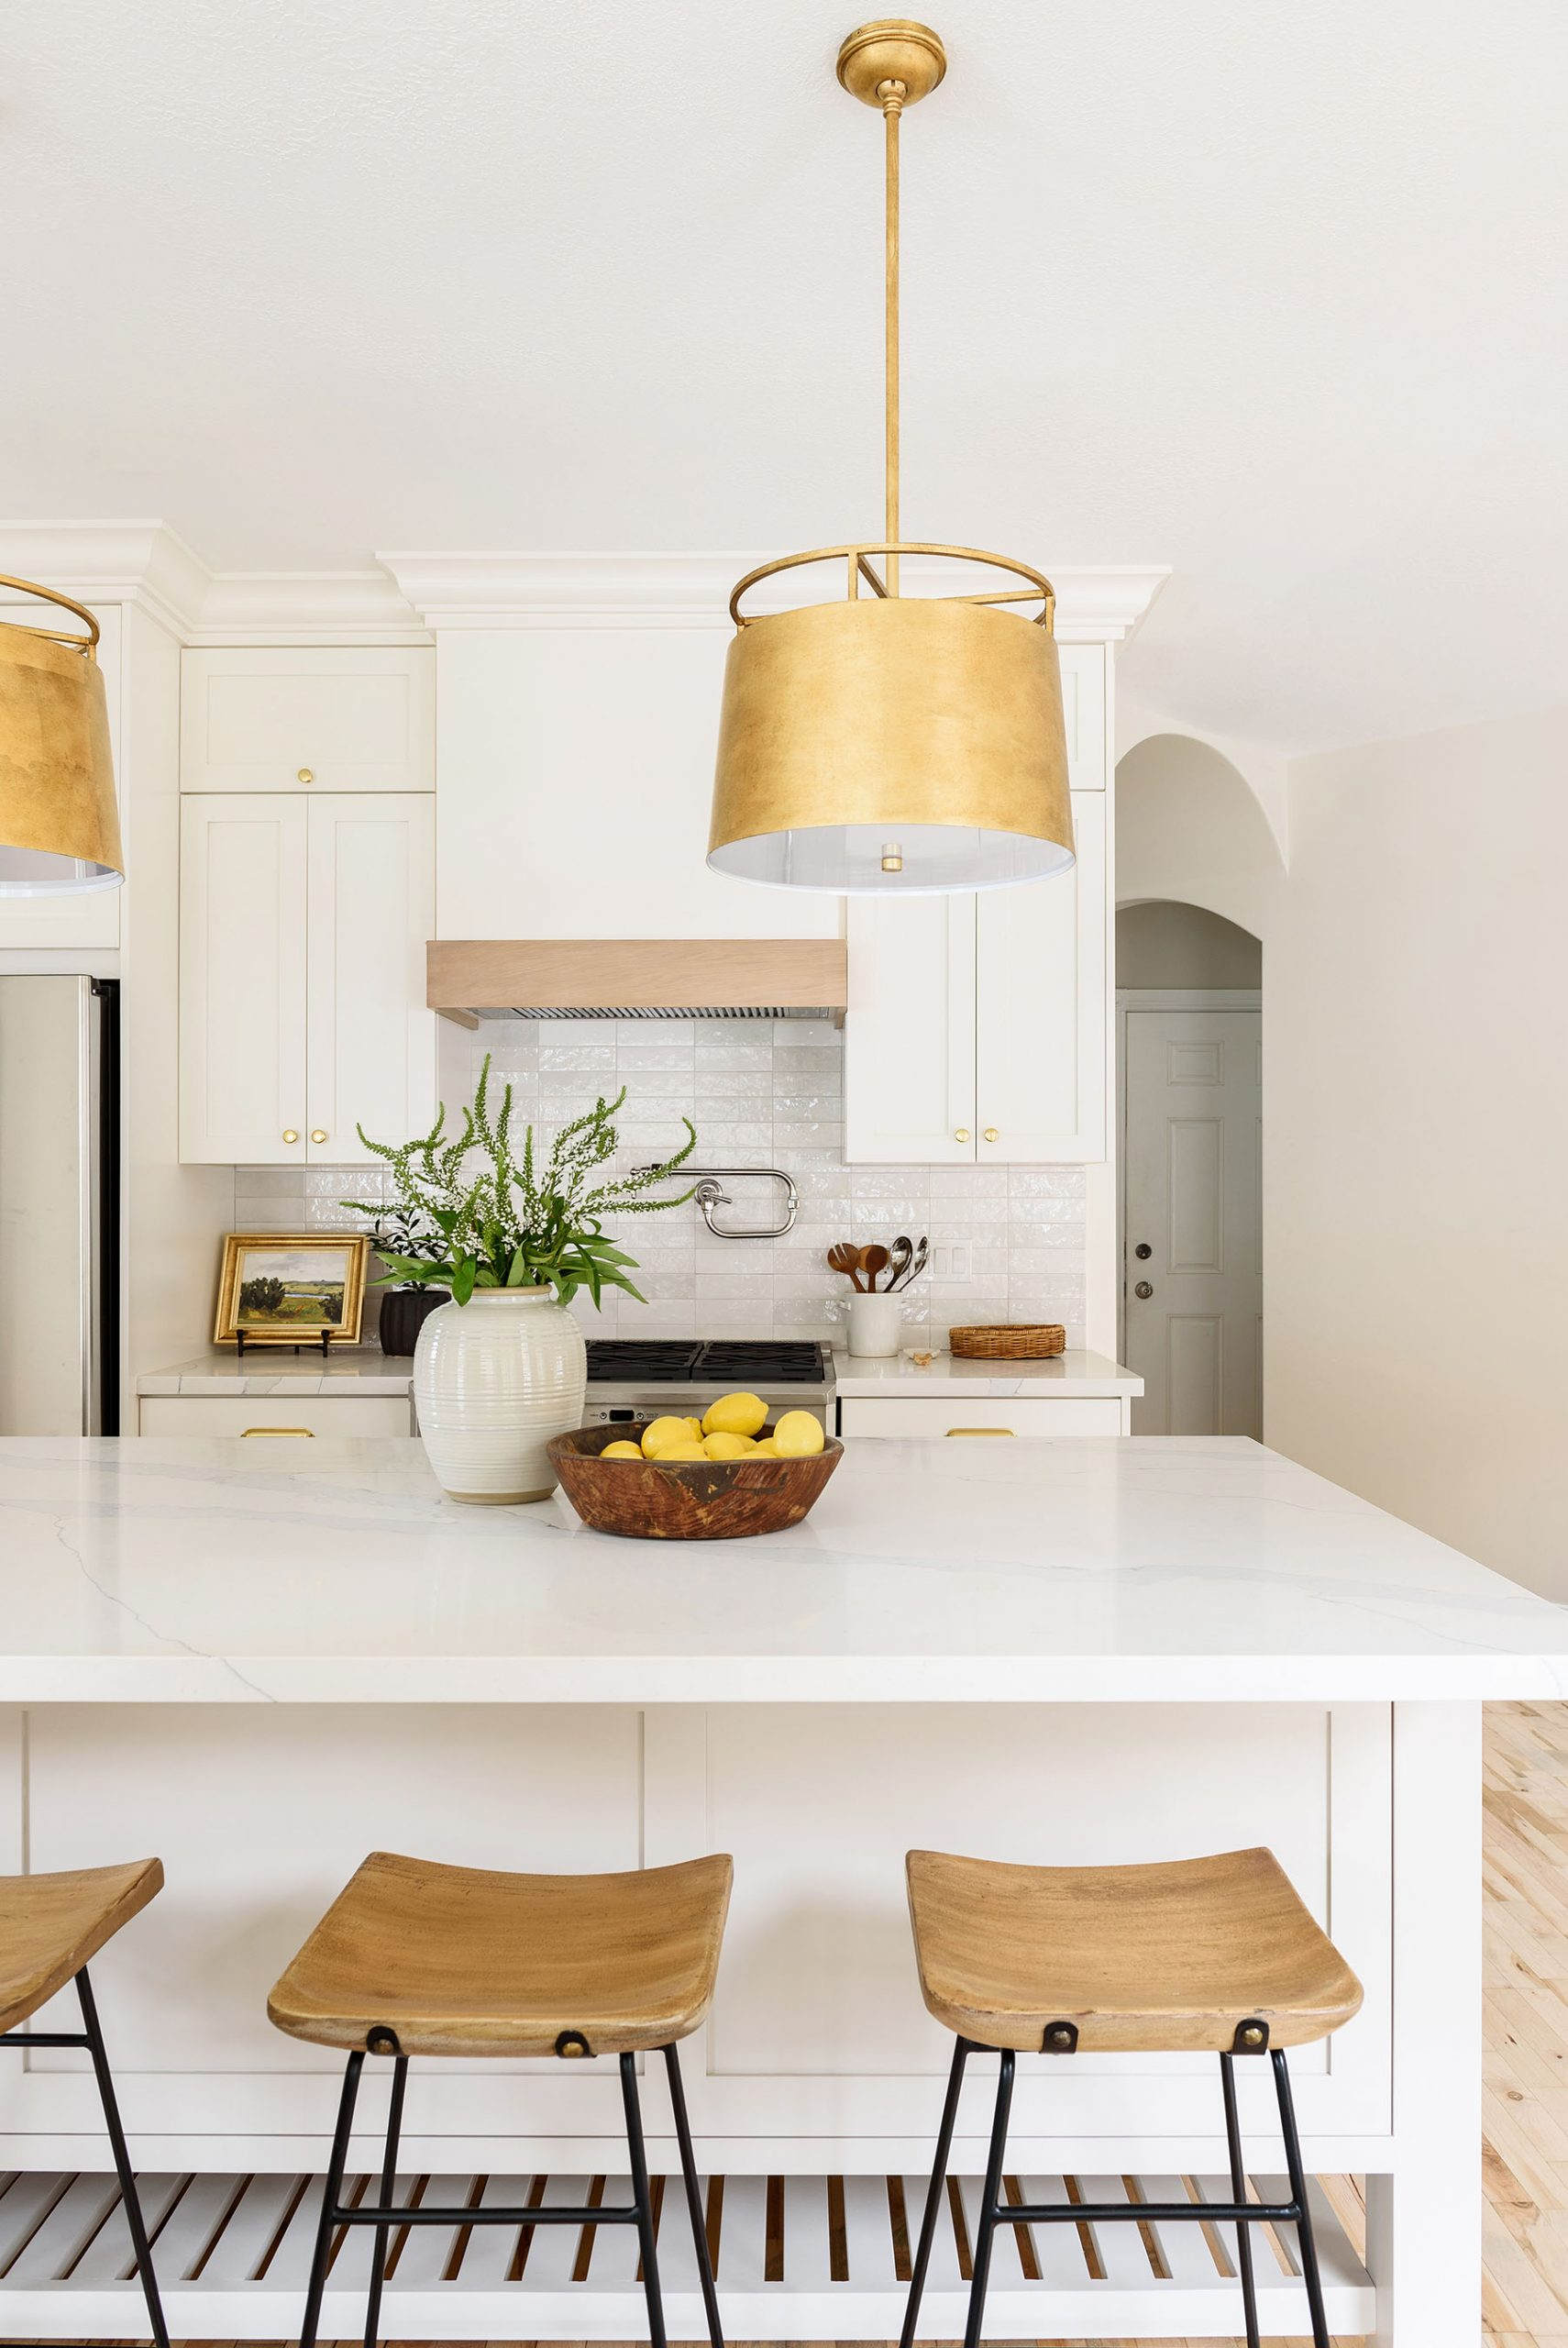 5 Simple Ways To Bring Your Kitchen To Life